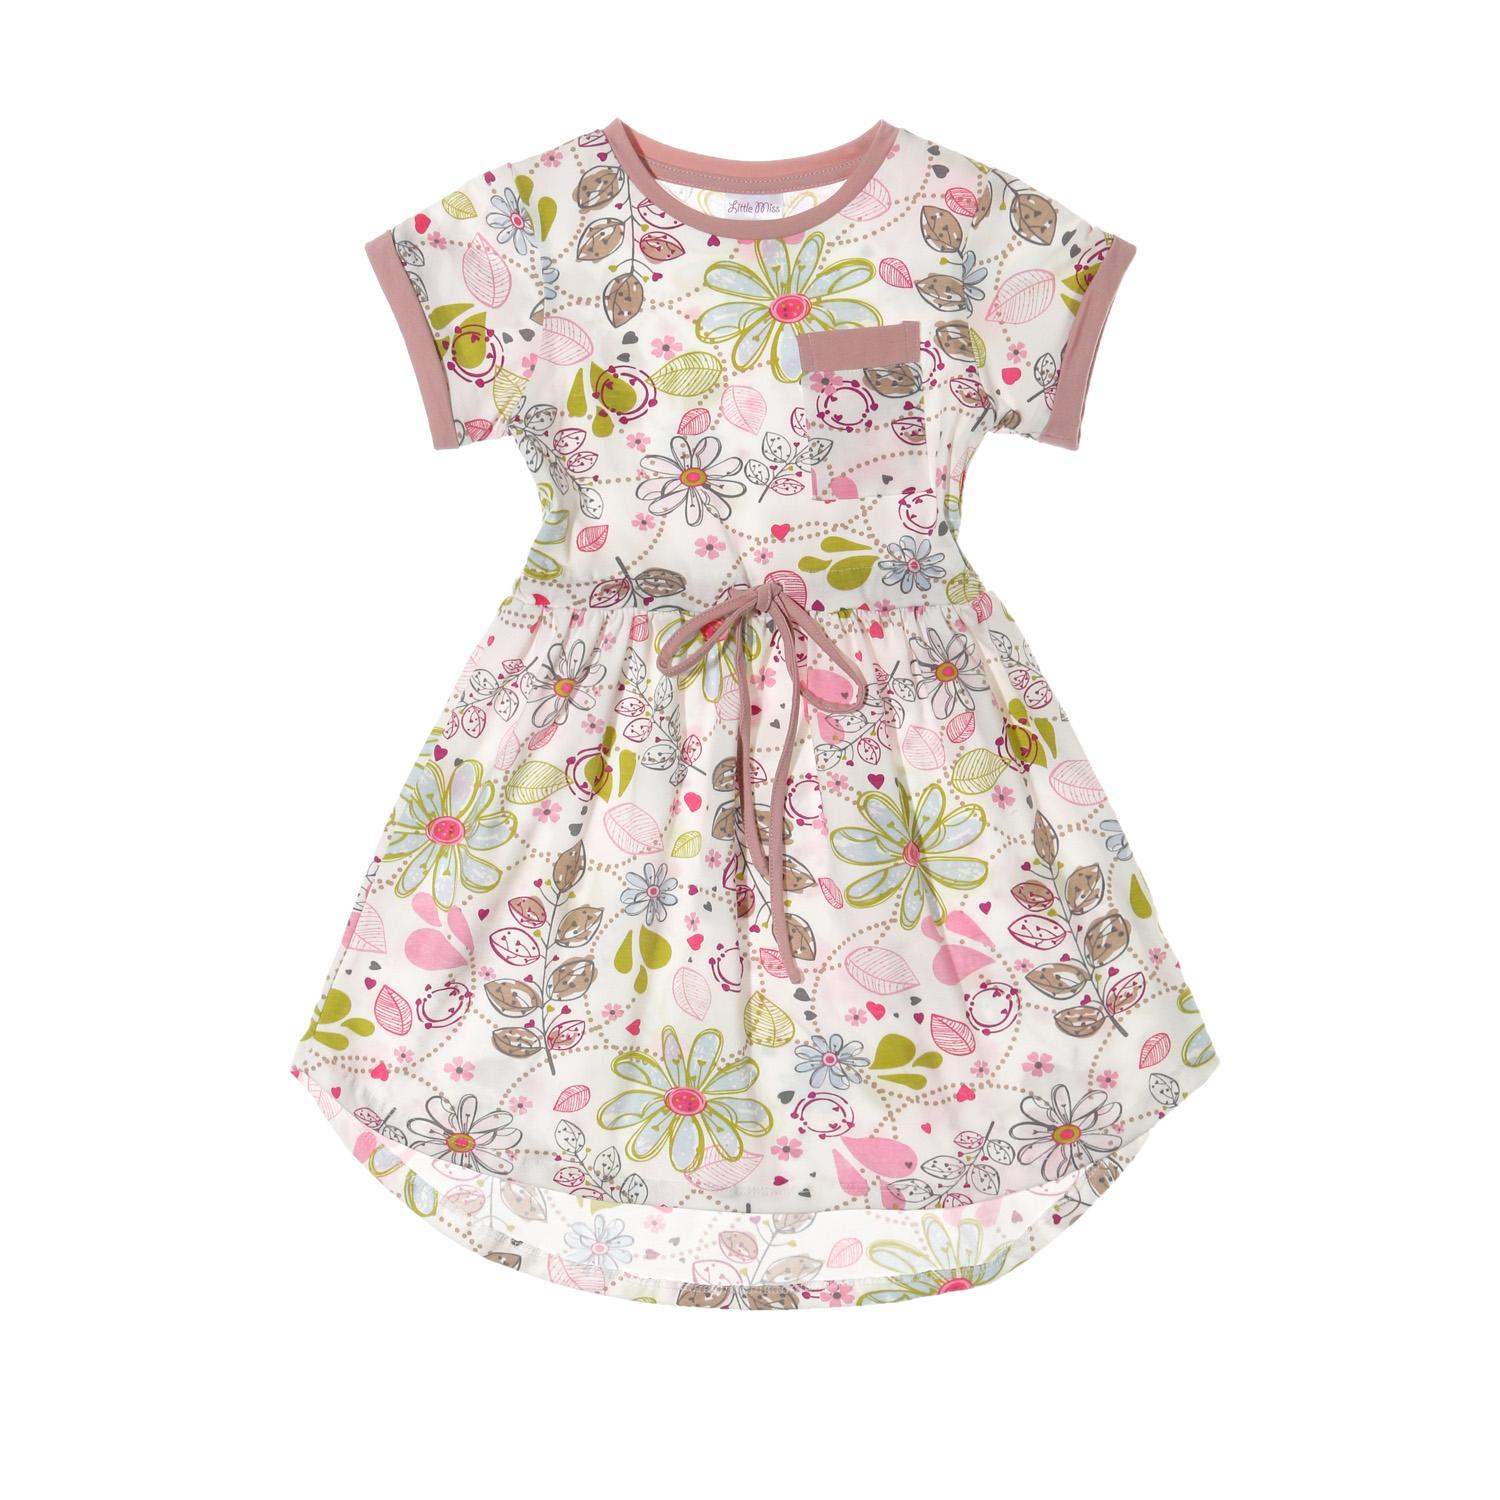 fb5136088ecc Girls Dresses for sale - Baby Dresses for Girls online brands ...